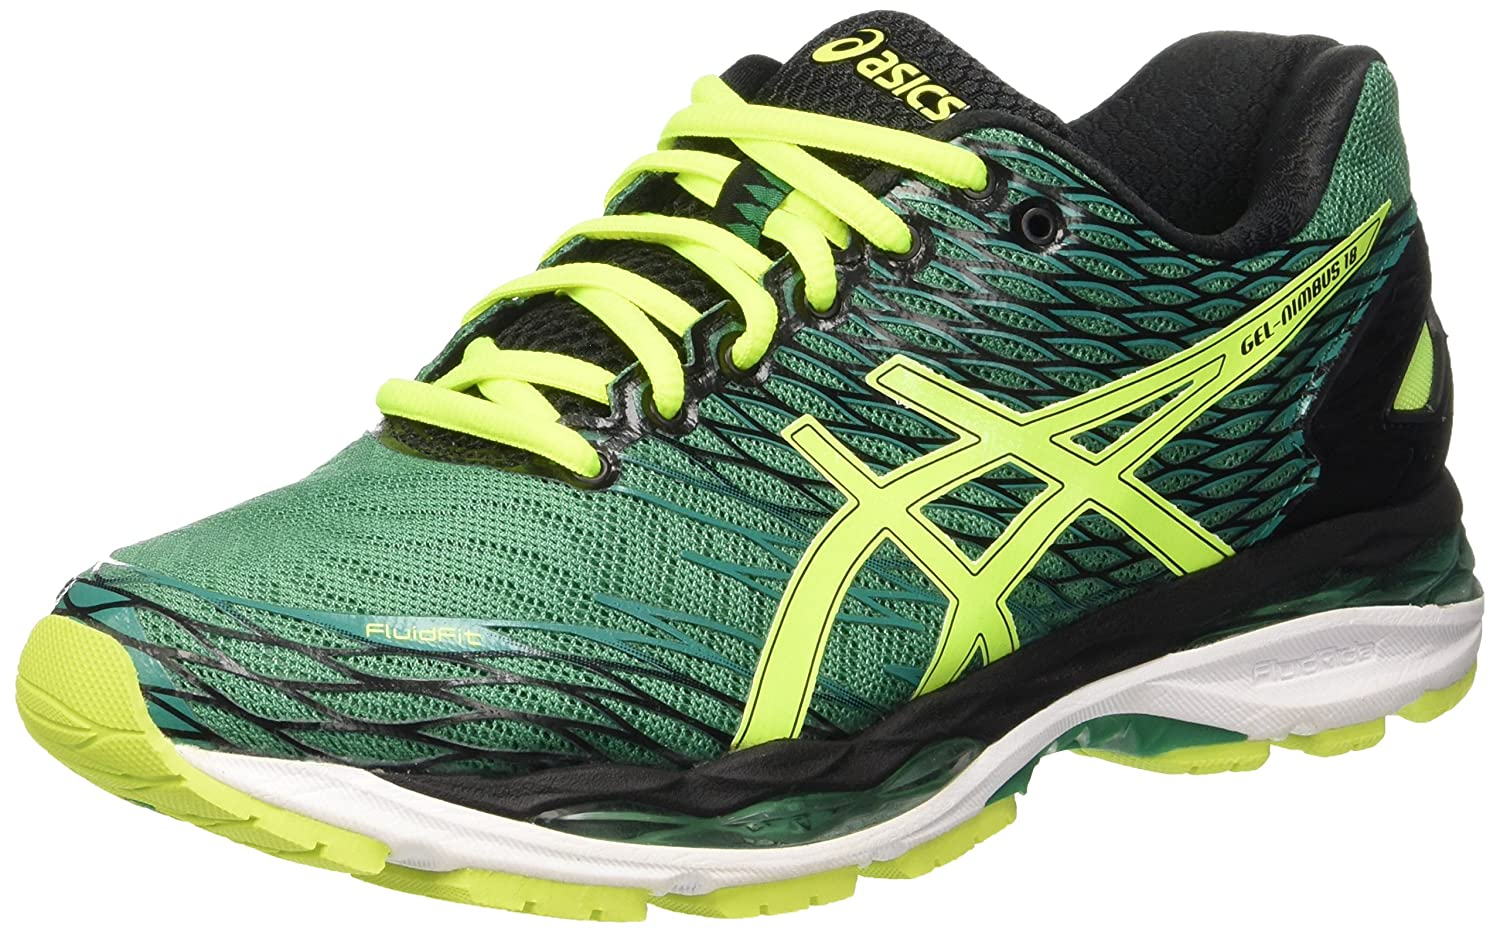 Asics Unisex Adults' Gel Nimbus 18 Running Shoes, Green (Pine/Flash  Yellow/Black), 5 UK: Amazon.co.uk: Shoes & Bags